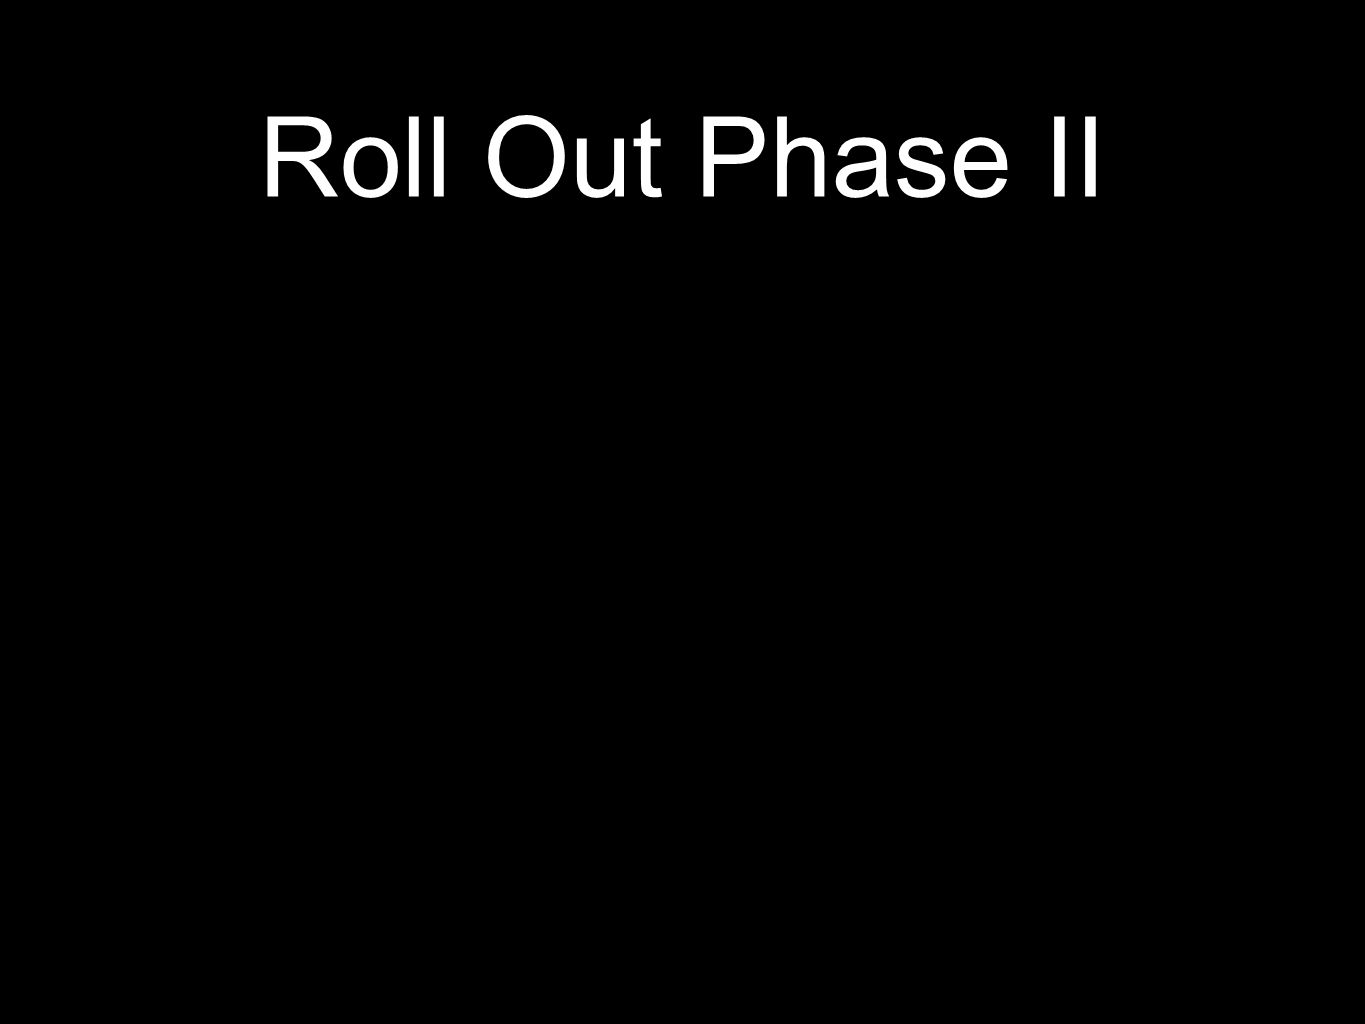 Roll Out Phase II